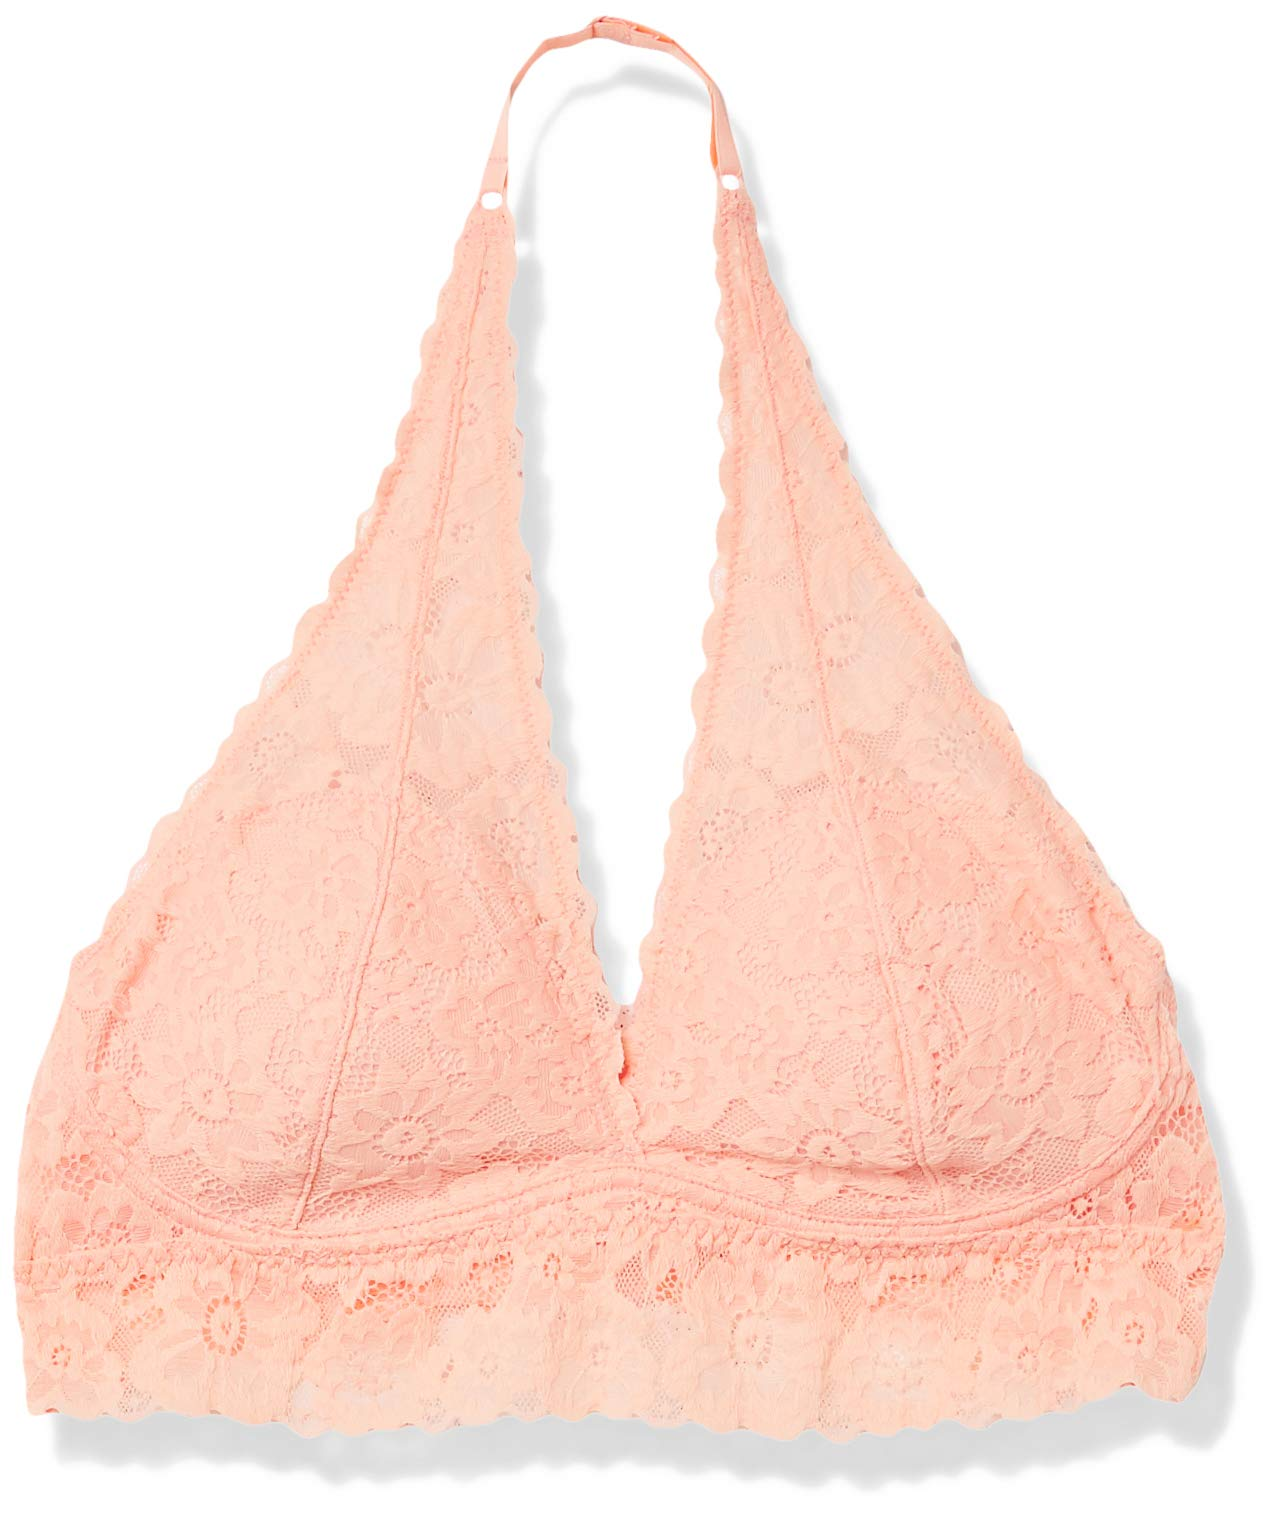 Amazon Brand - Mae Women's Halter Lace Bralette (for A-C cups)